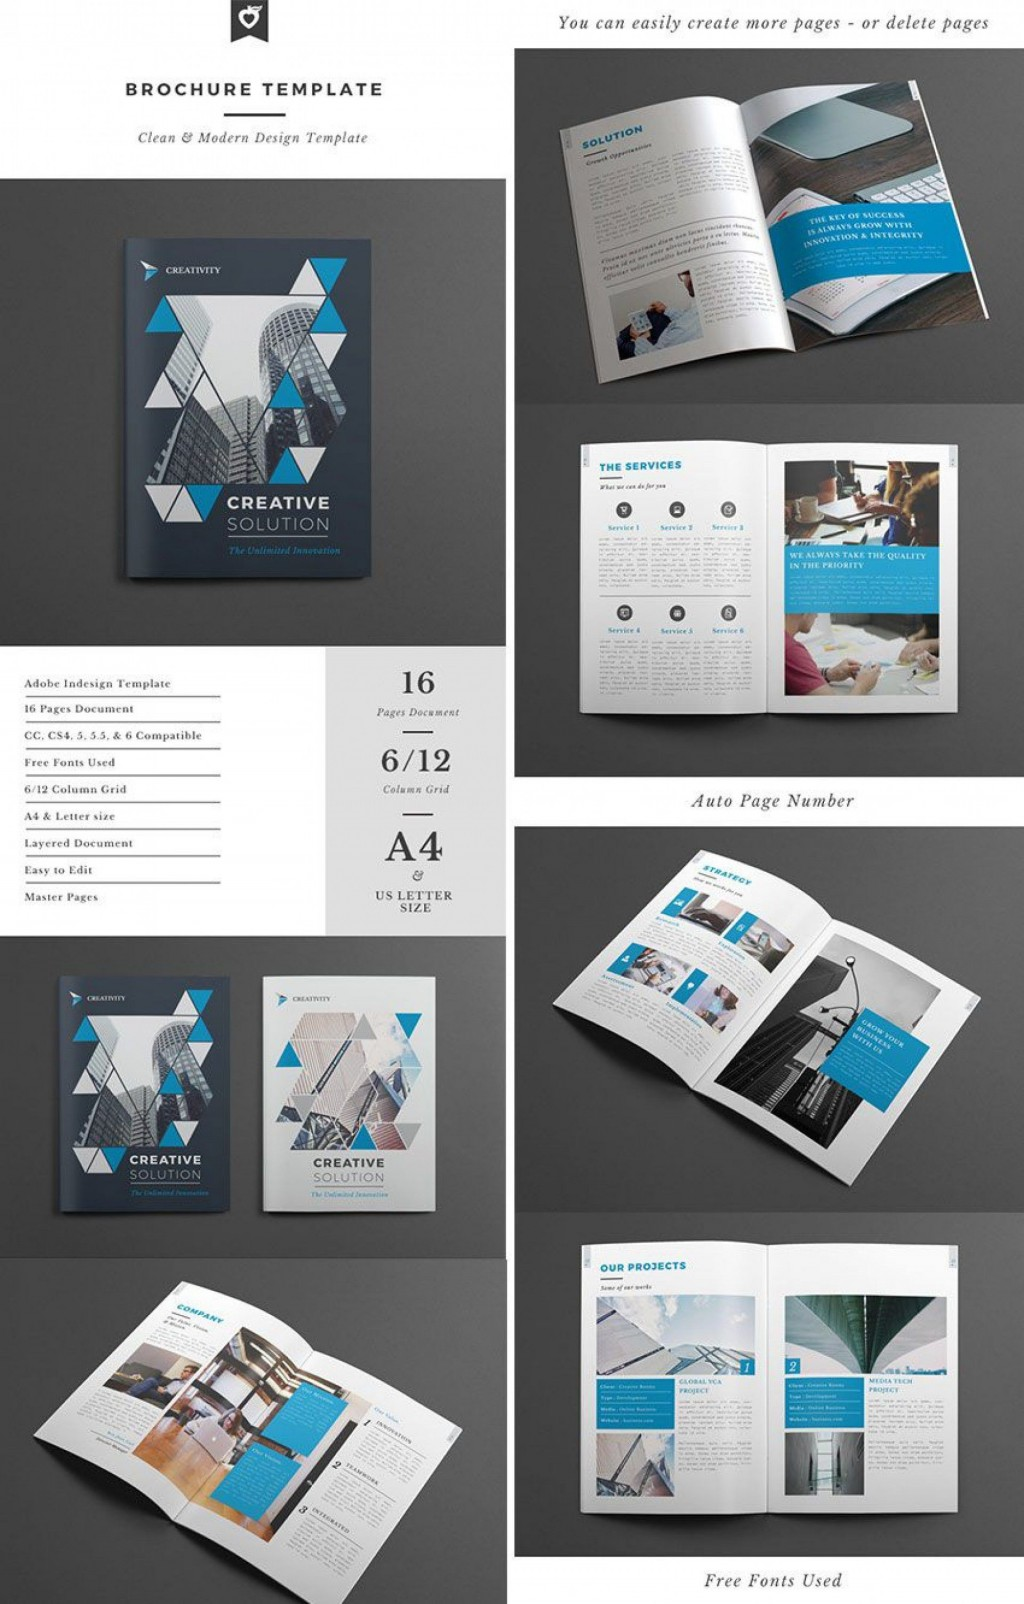 001 Fascinating Adobe Indesign Brochure Template Free Download Highest Clarity Large